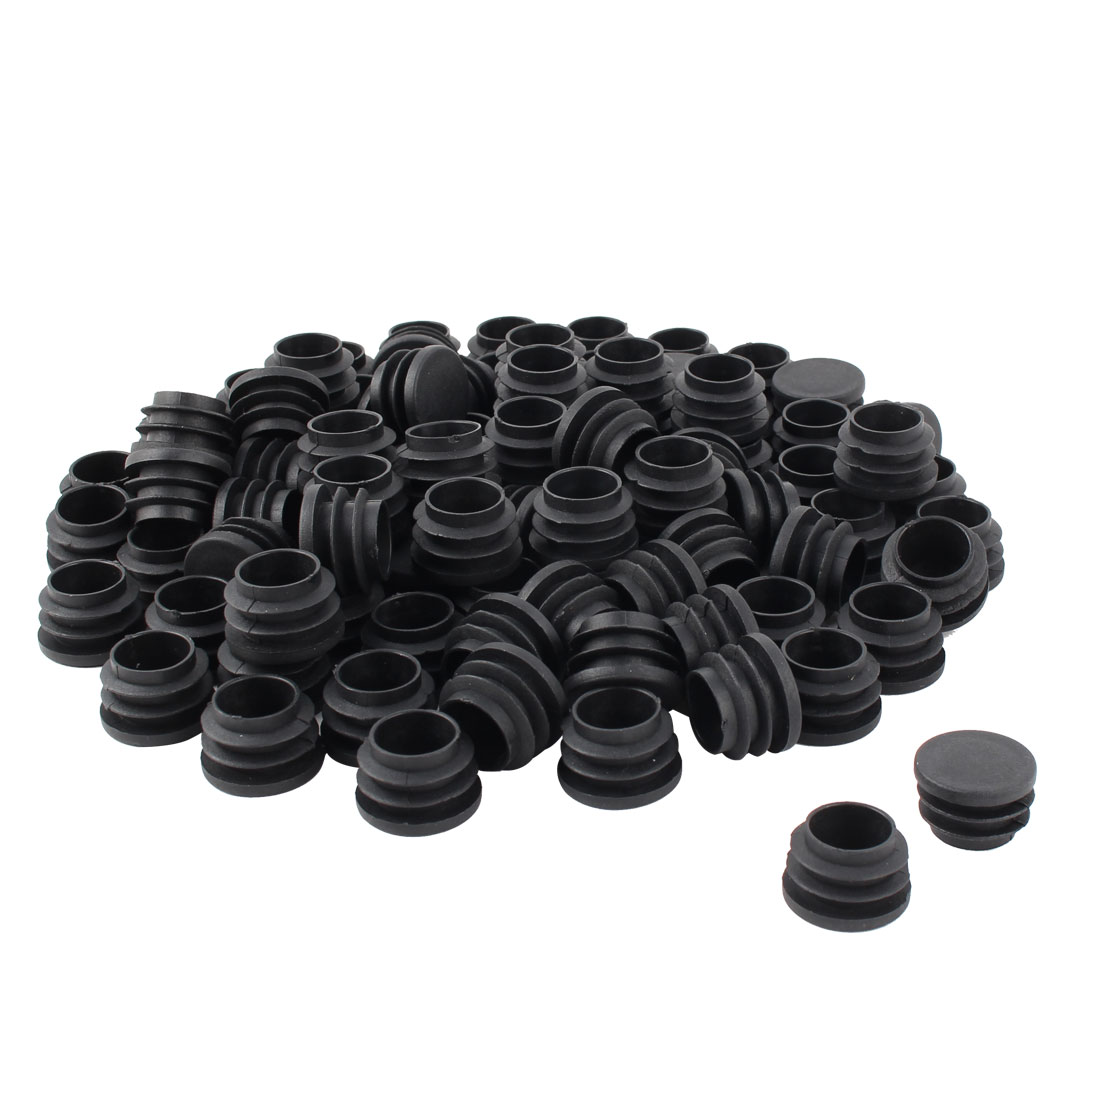 Furniture Table Chair Legs Plastic Flat Base Round Tube Pipe Insert Cap Cover Black 25mm Dia 80pcs